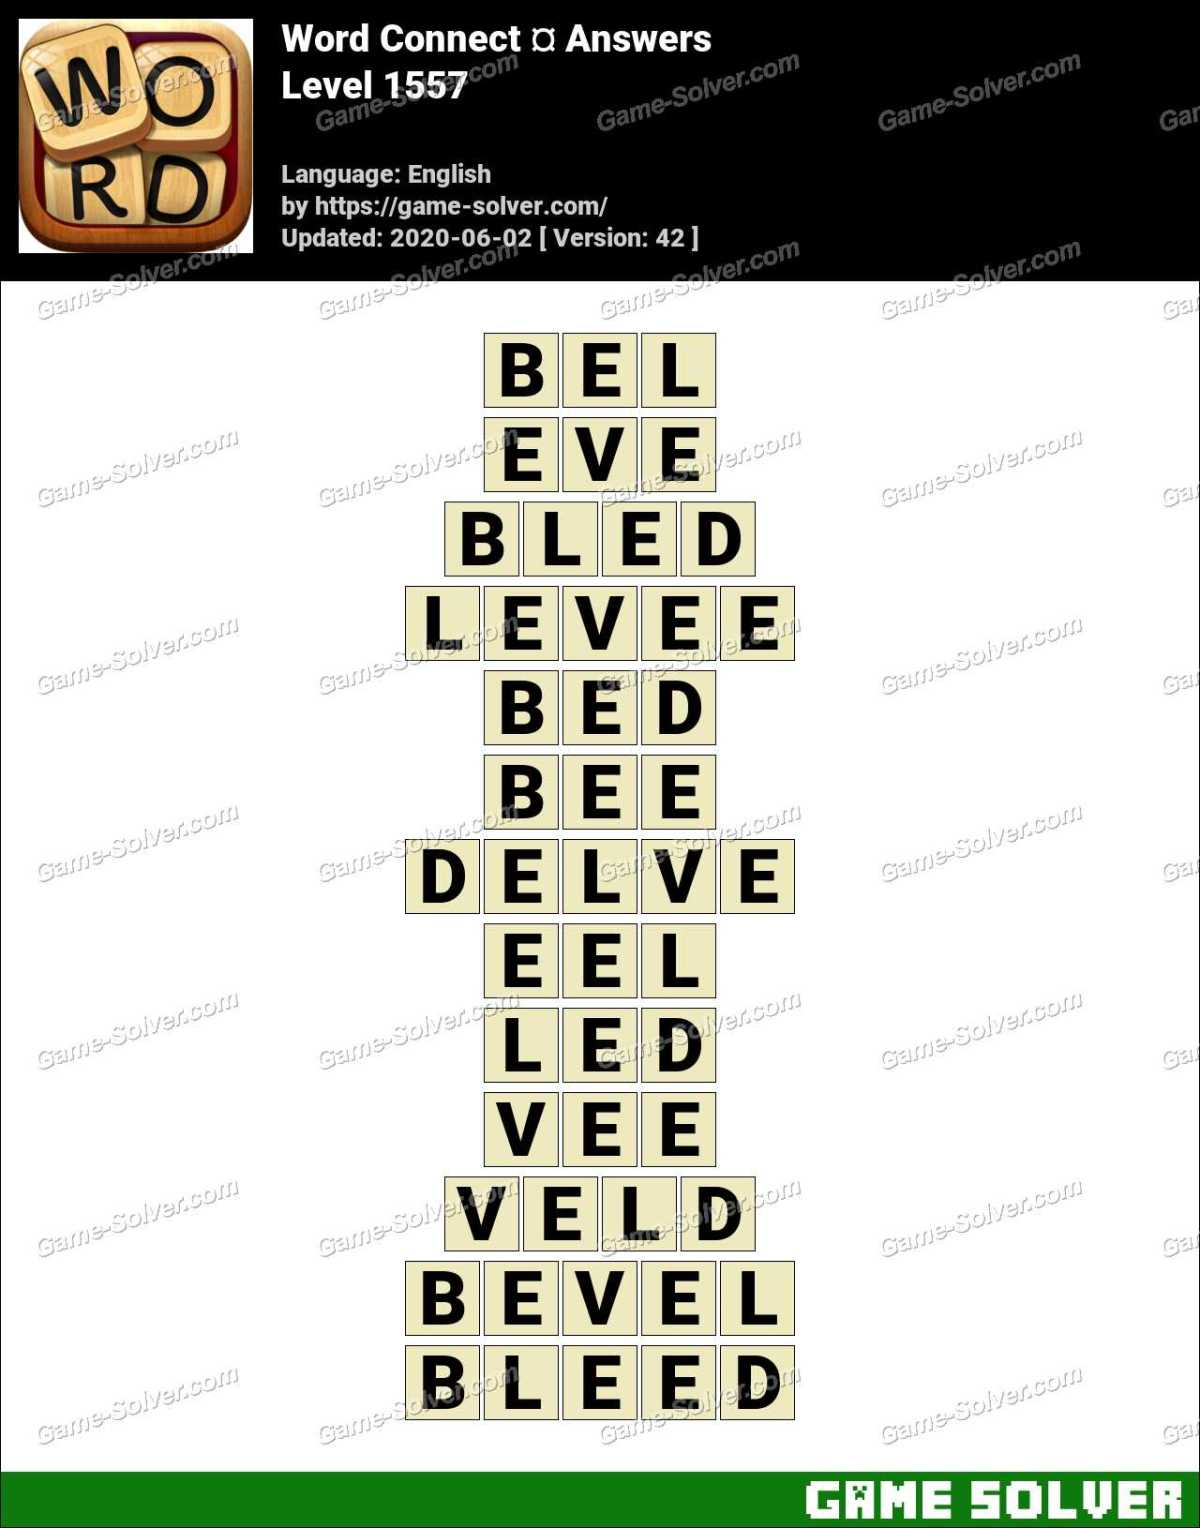 Word Connect Level 1557 Answers